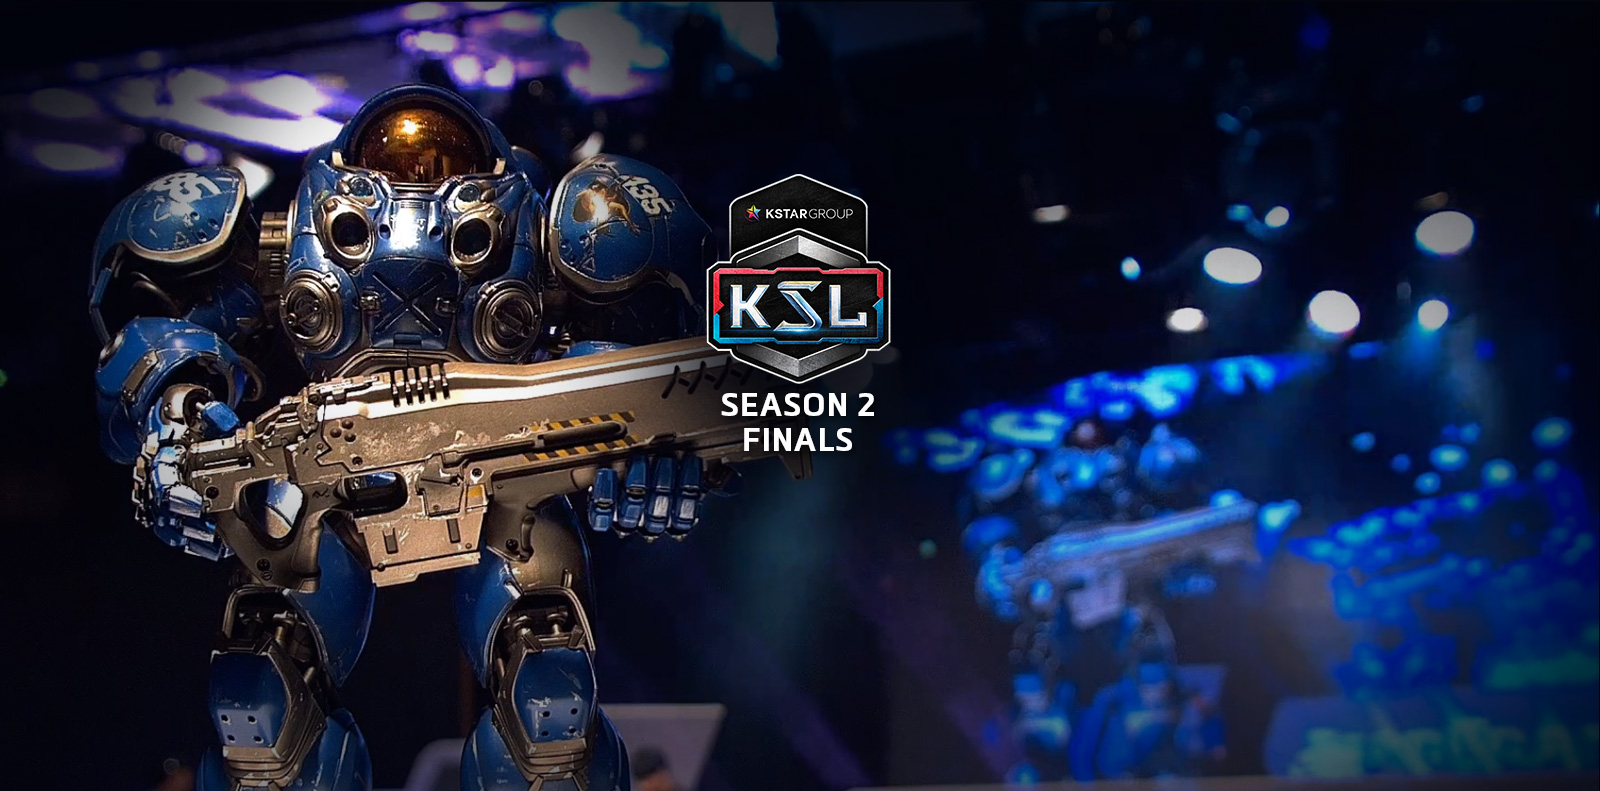 Tickets Now Available for the KSL Season 2 Finals!